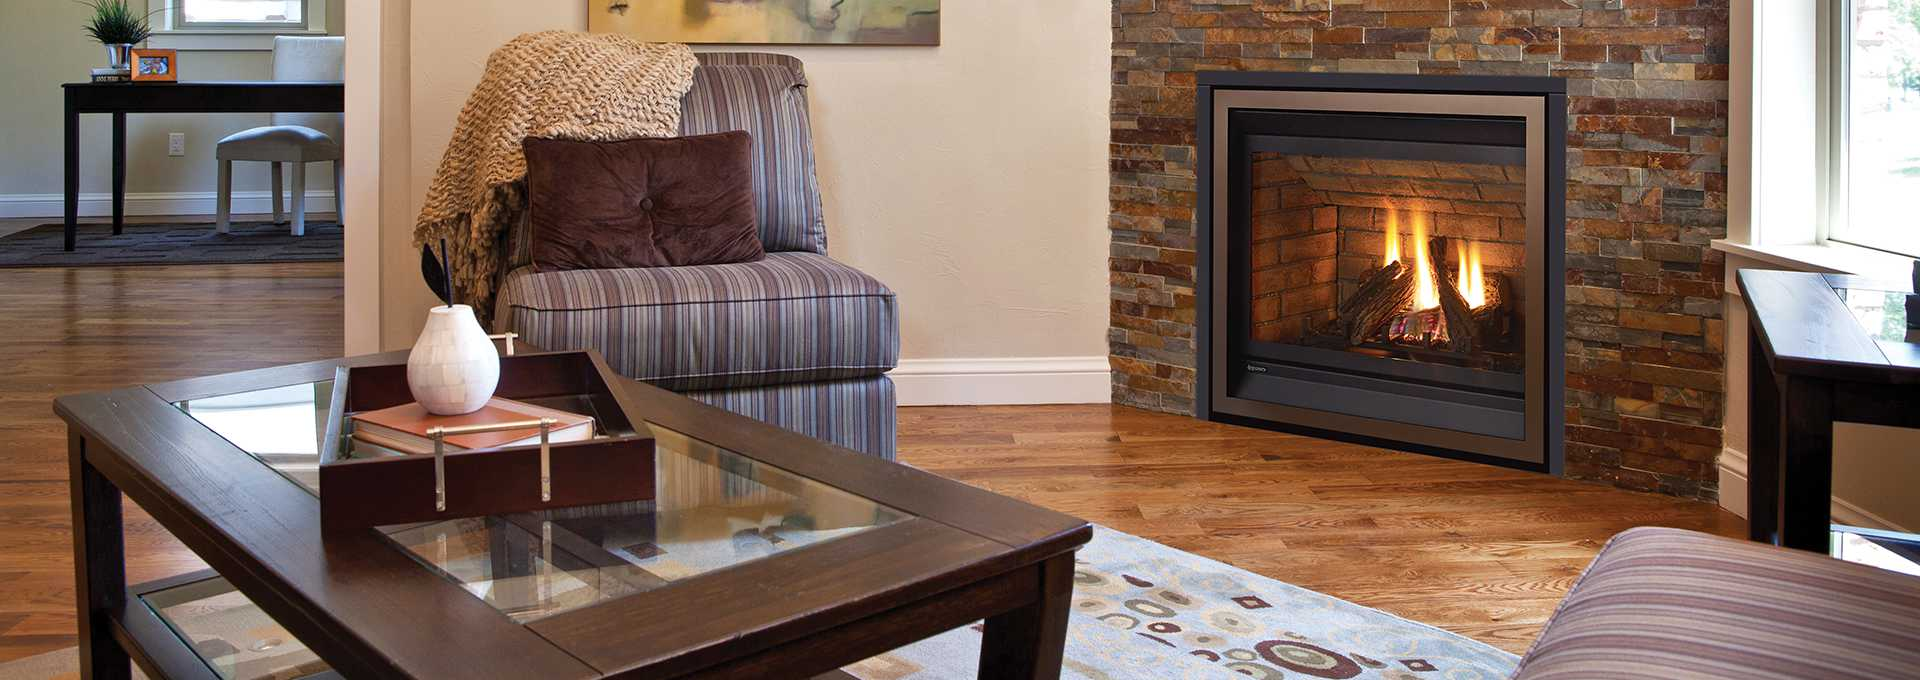 Fireplaces Toronto Fireplace Repair Amp Maintenance Cozy